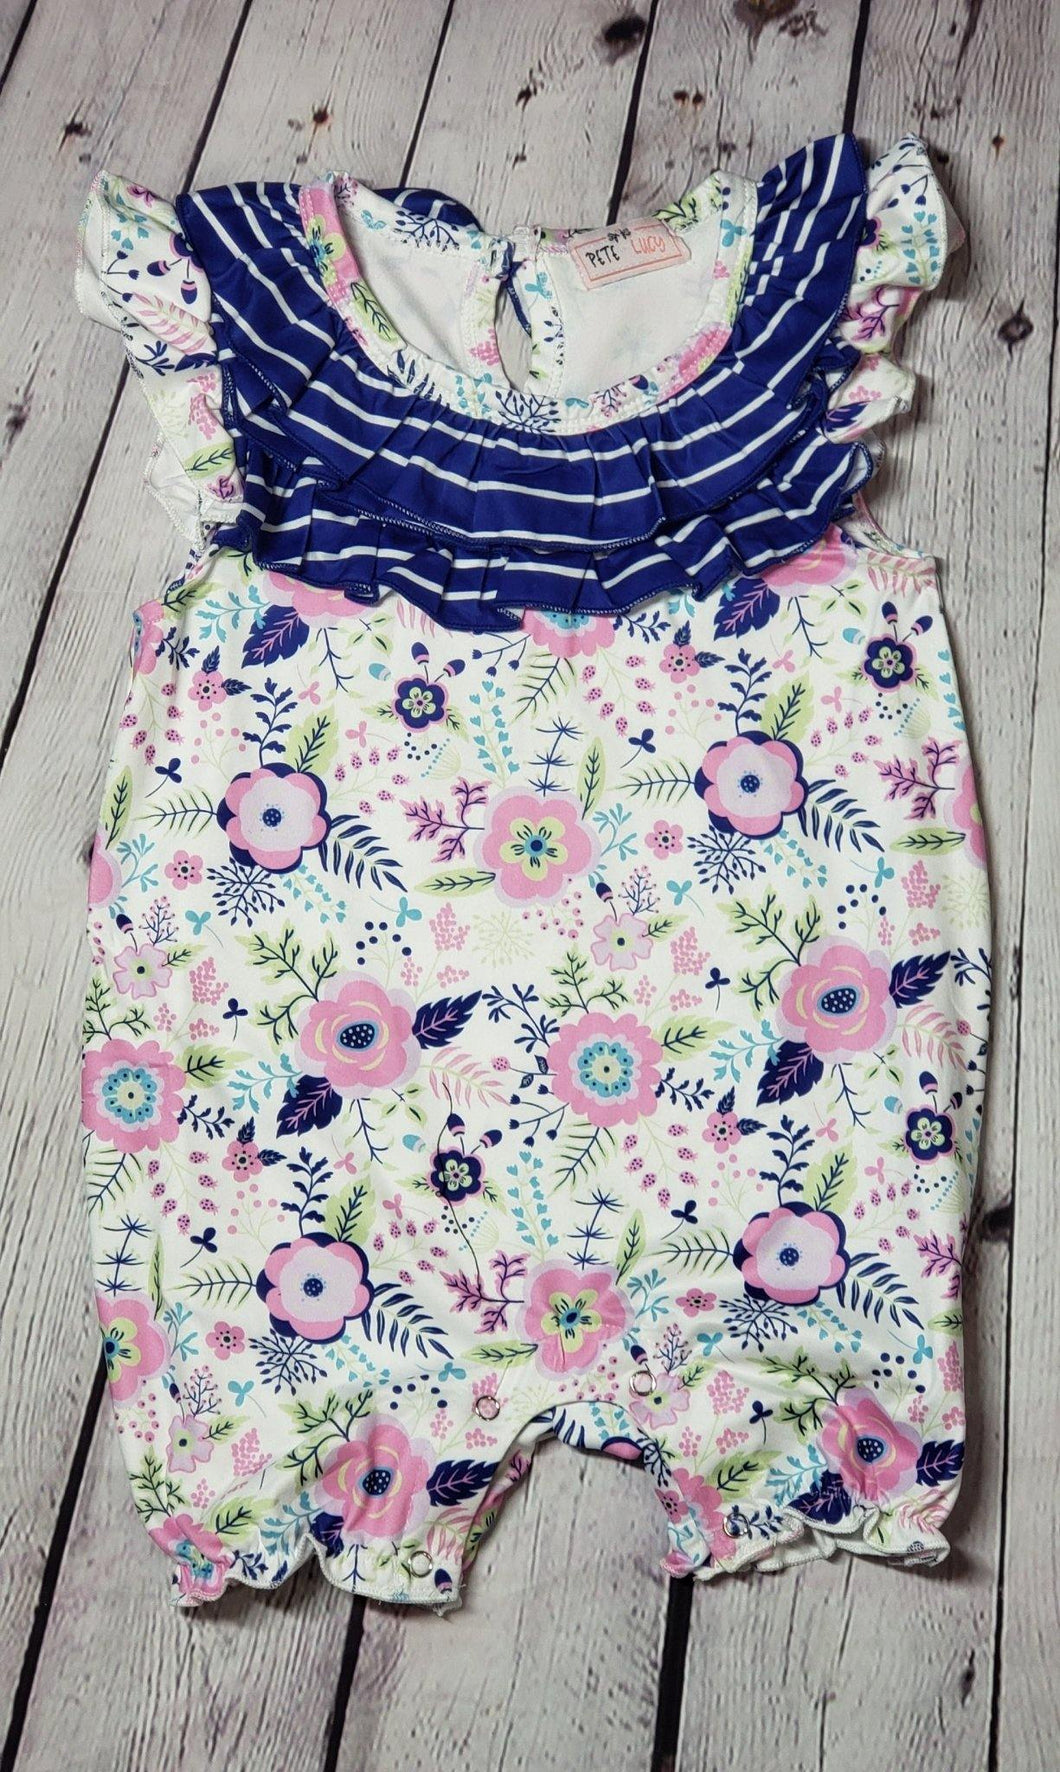 Pretty Like A Flower Infant Romper - LilChic BabyBug Boutique LLC